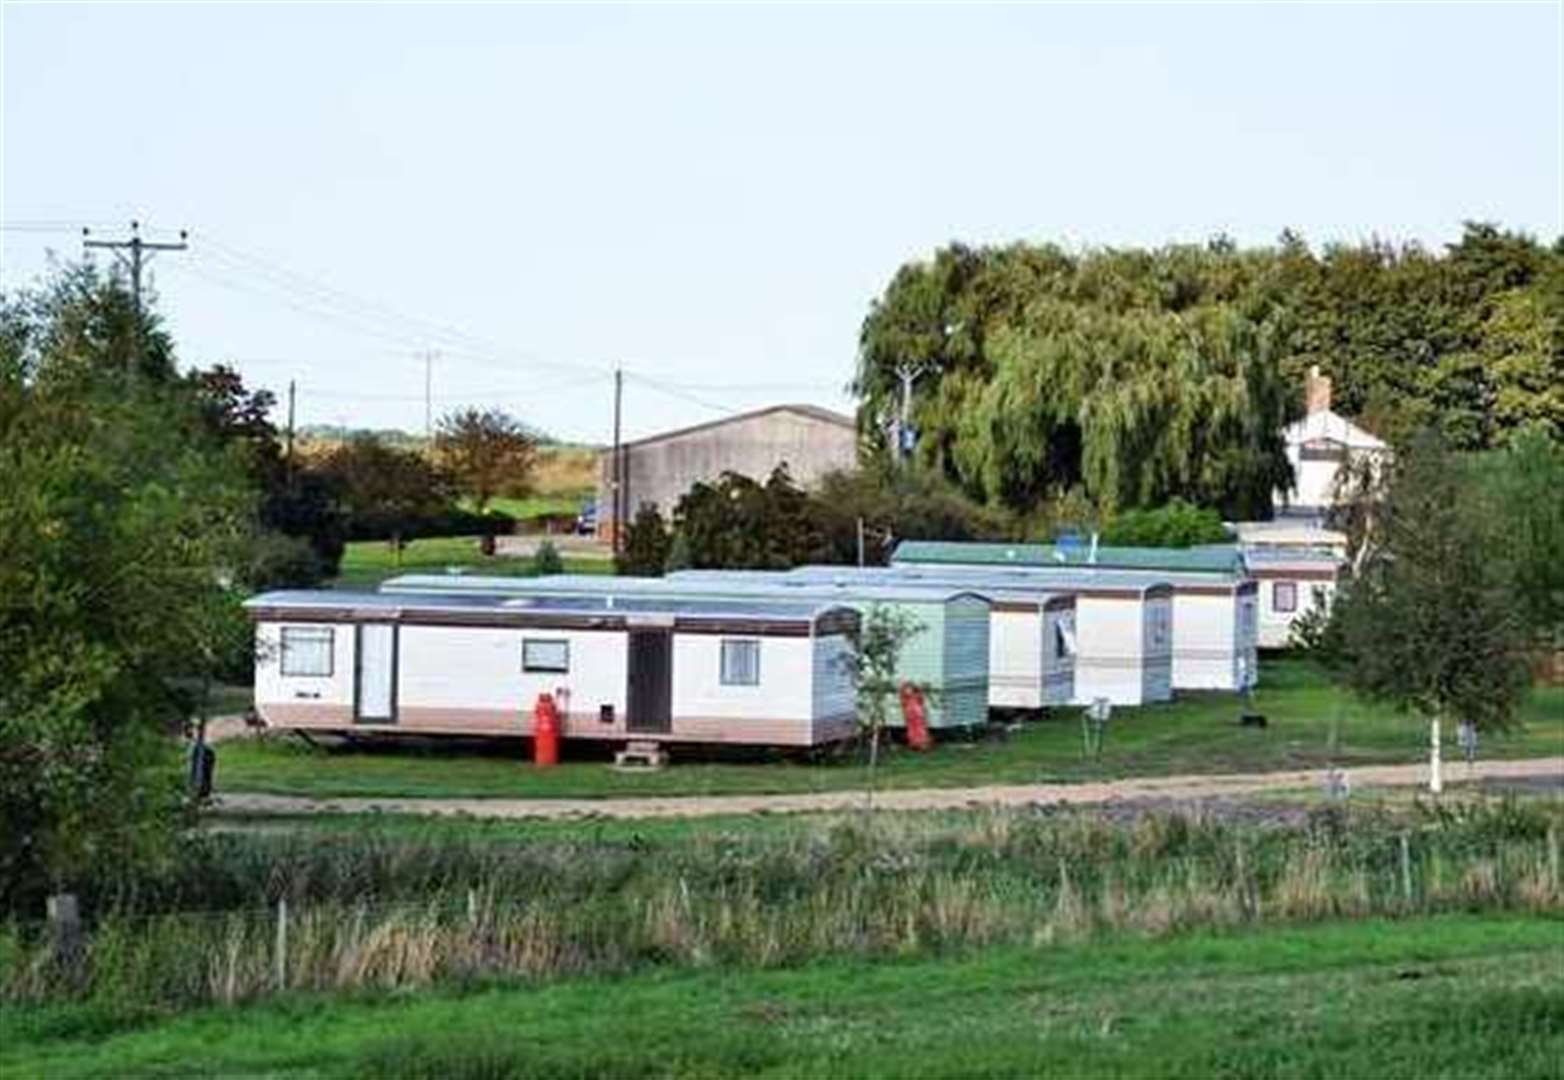 Caravan park owner wants to create Gypsy/Travellers' plots